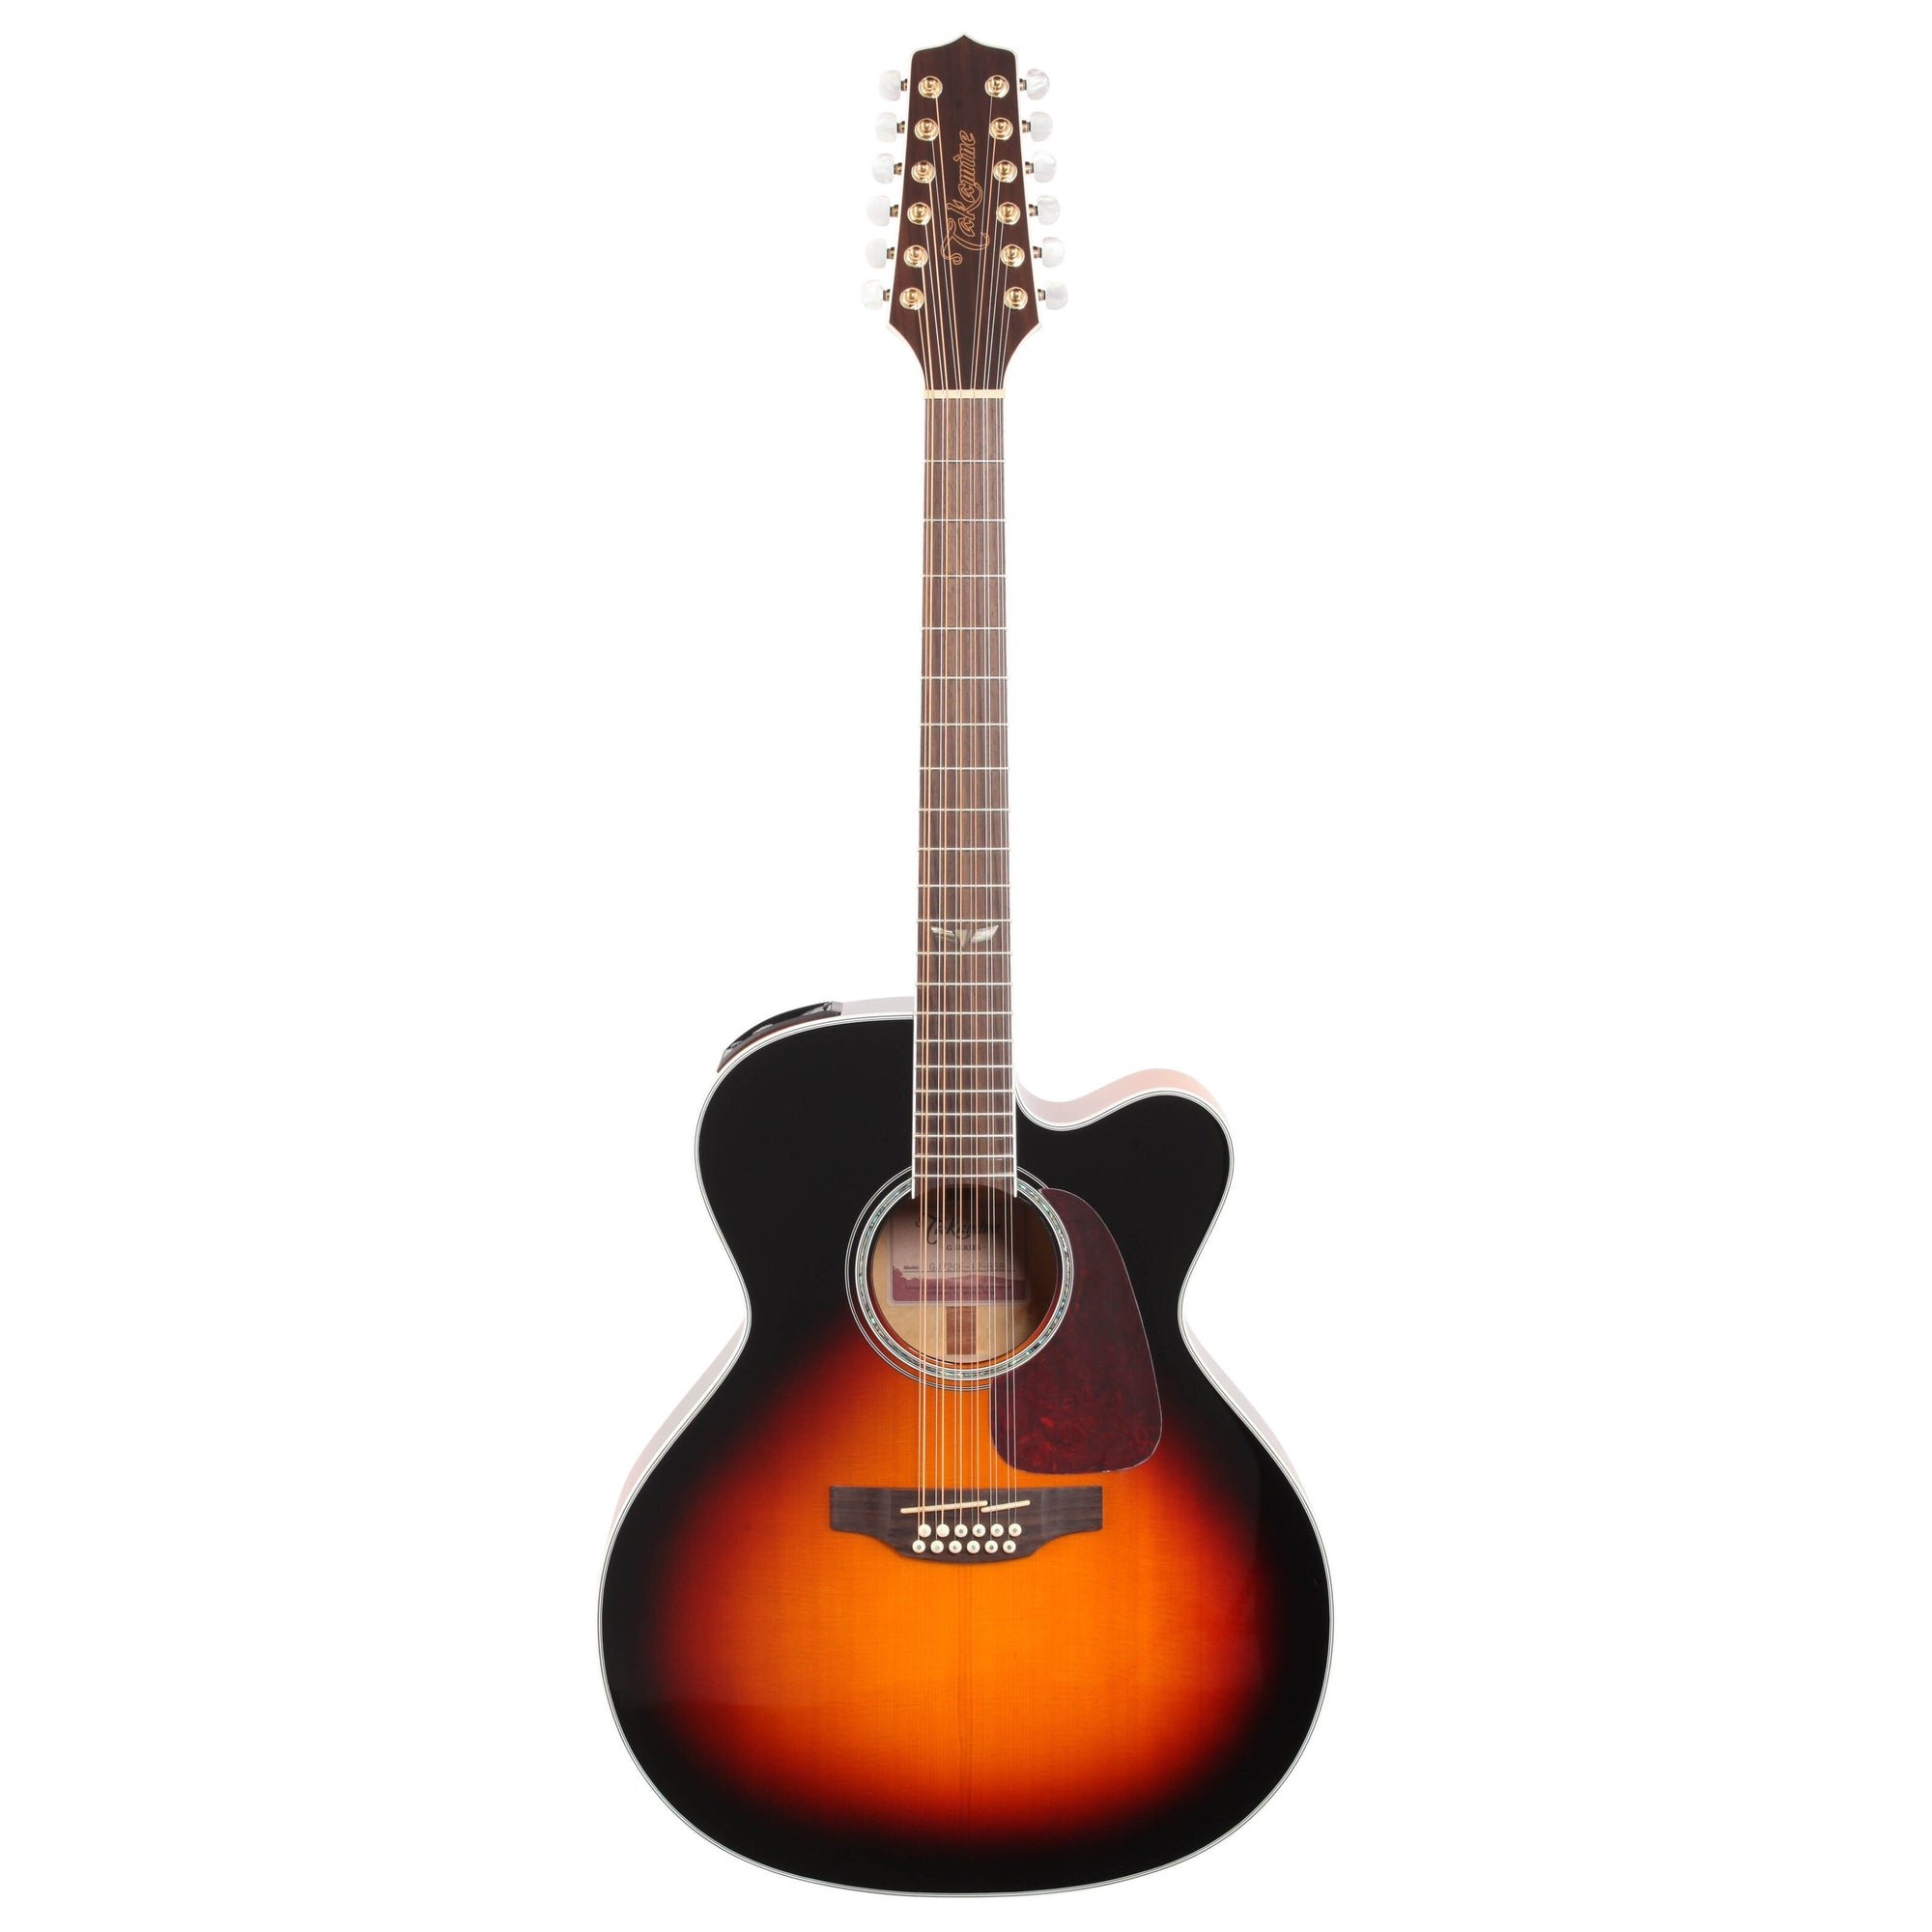 Takamine GJ72CE Jumbo Cutaway Acoustic-Electric Guitar, 12-String, Brown Sunburst